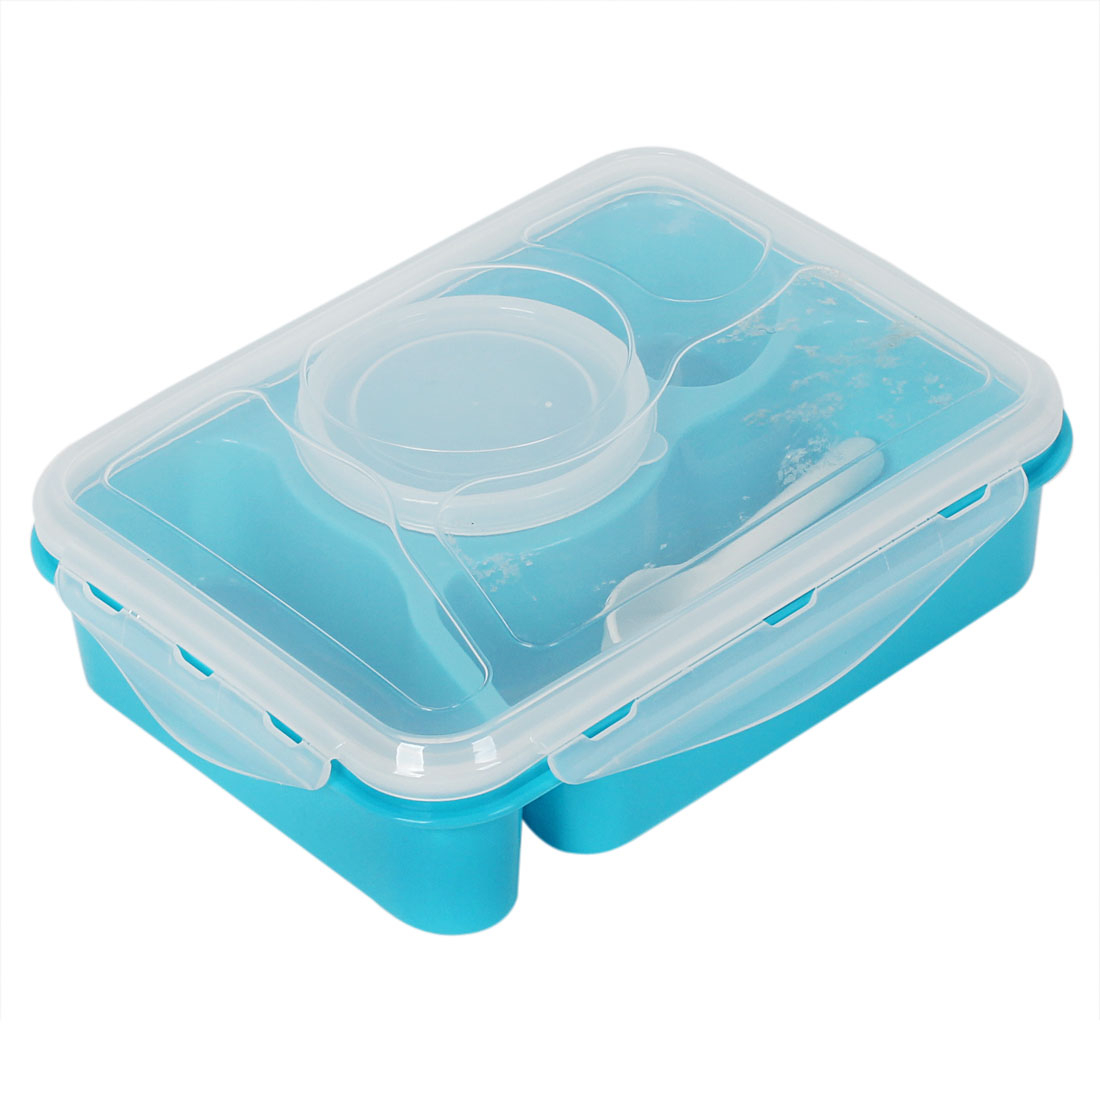 Home School Office Plastic Microwave Bento Lunch Food Soup Box Container Case w Spoon